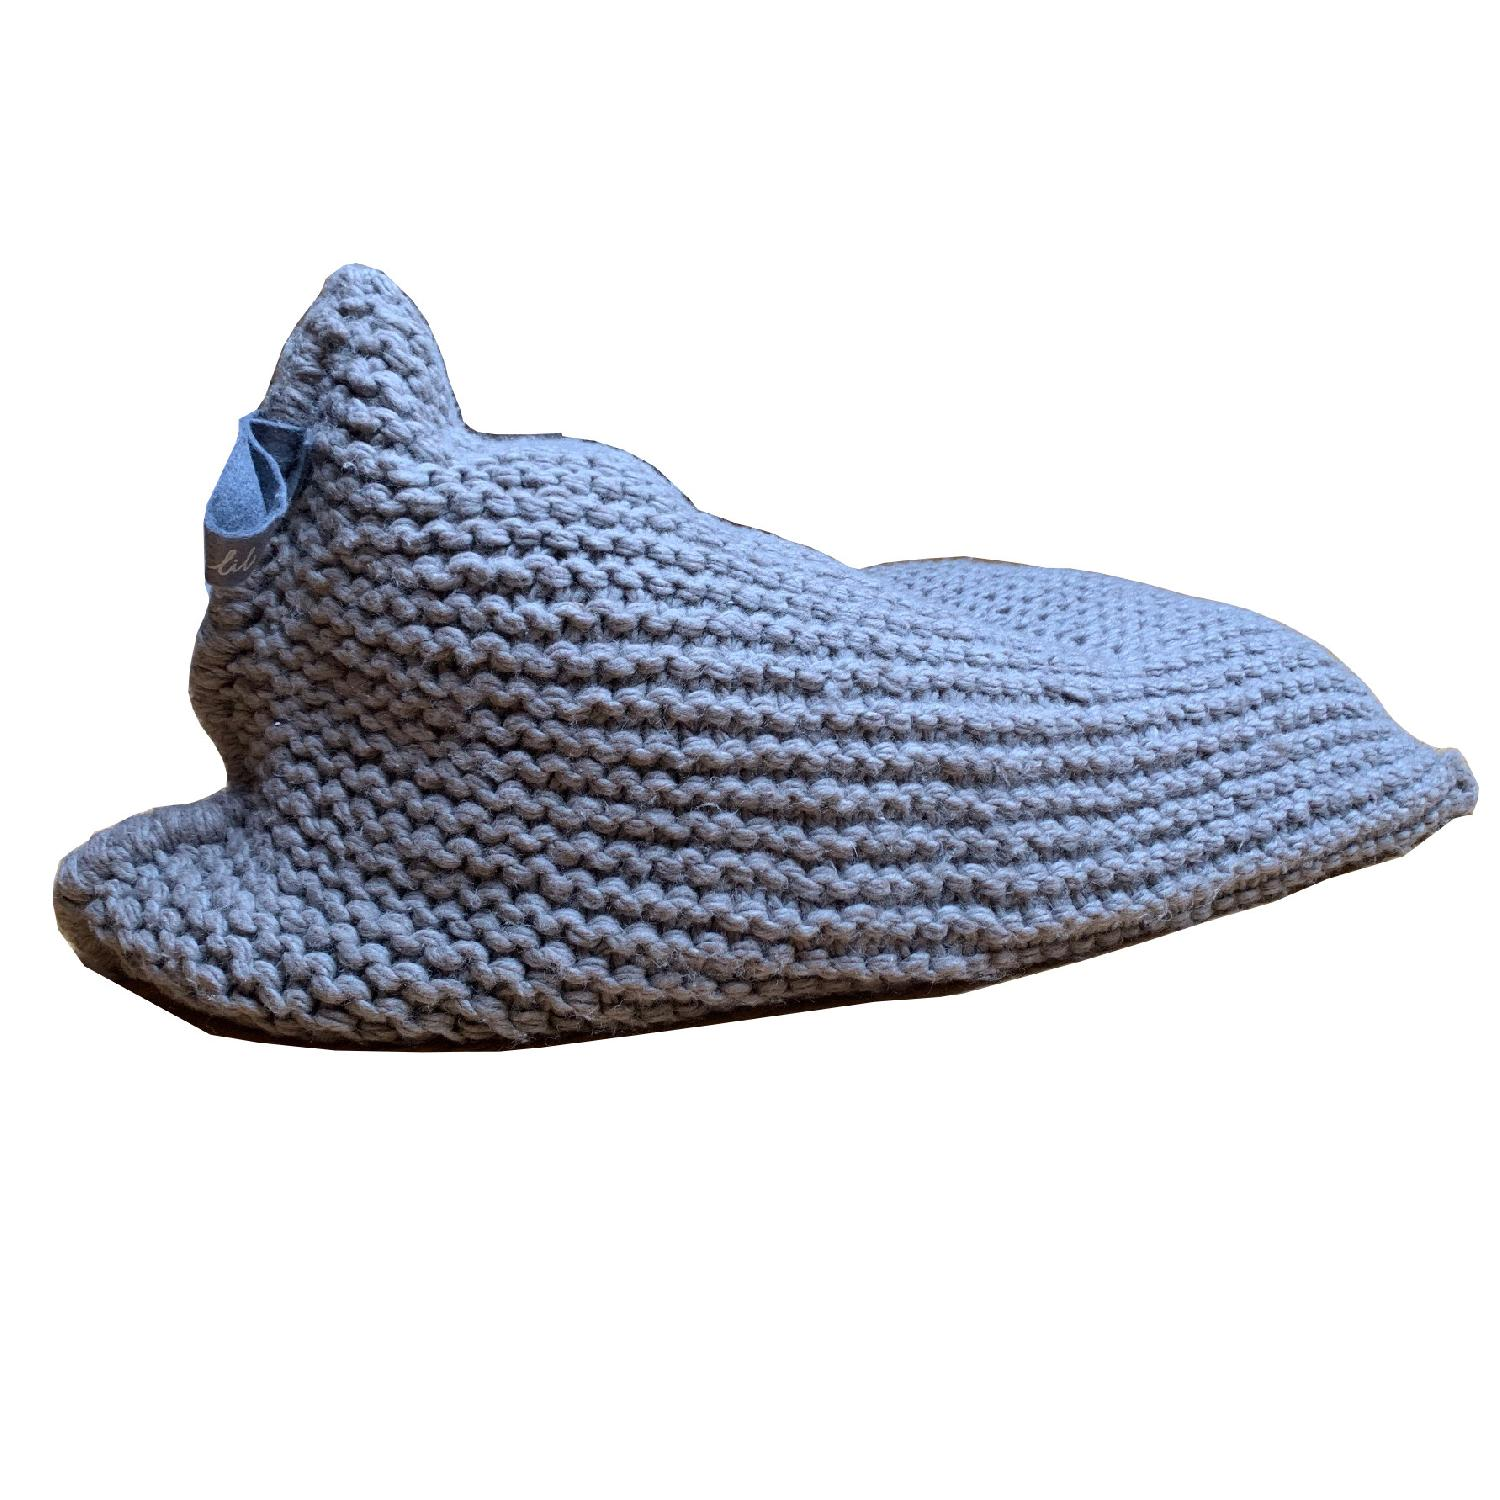 Nest Knitted Bean Bag - image-1